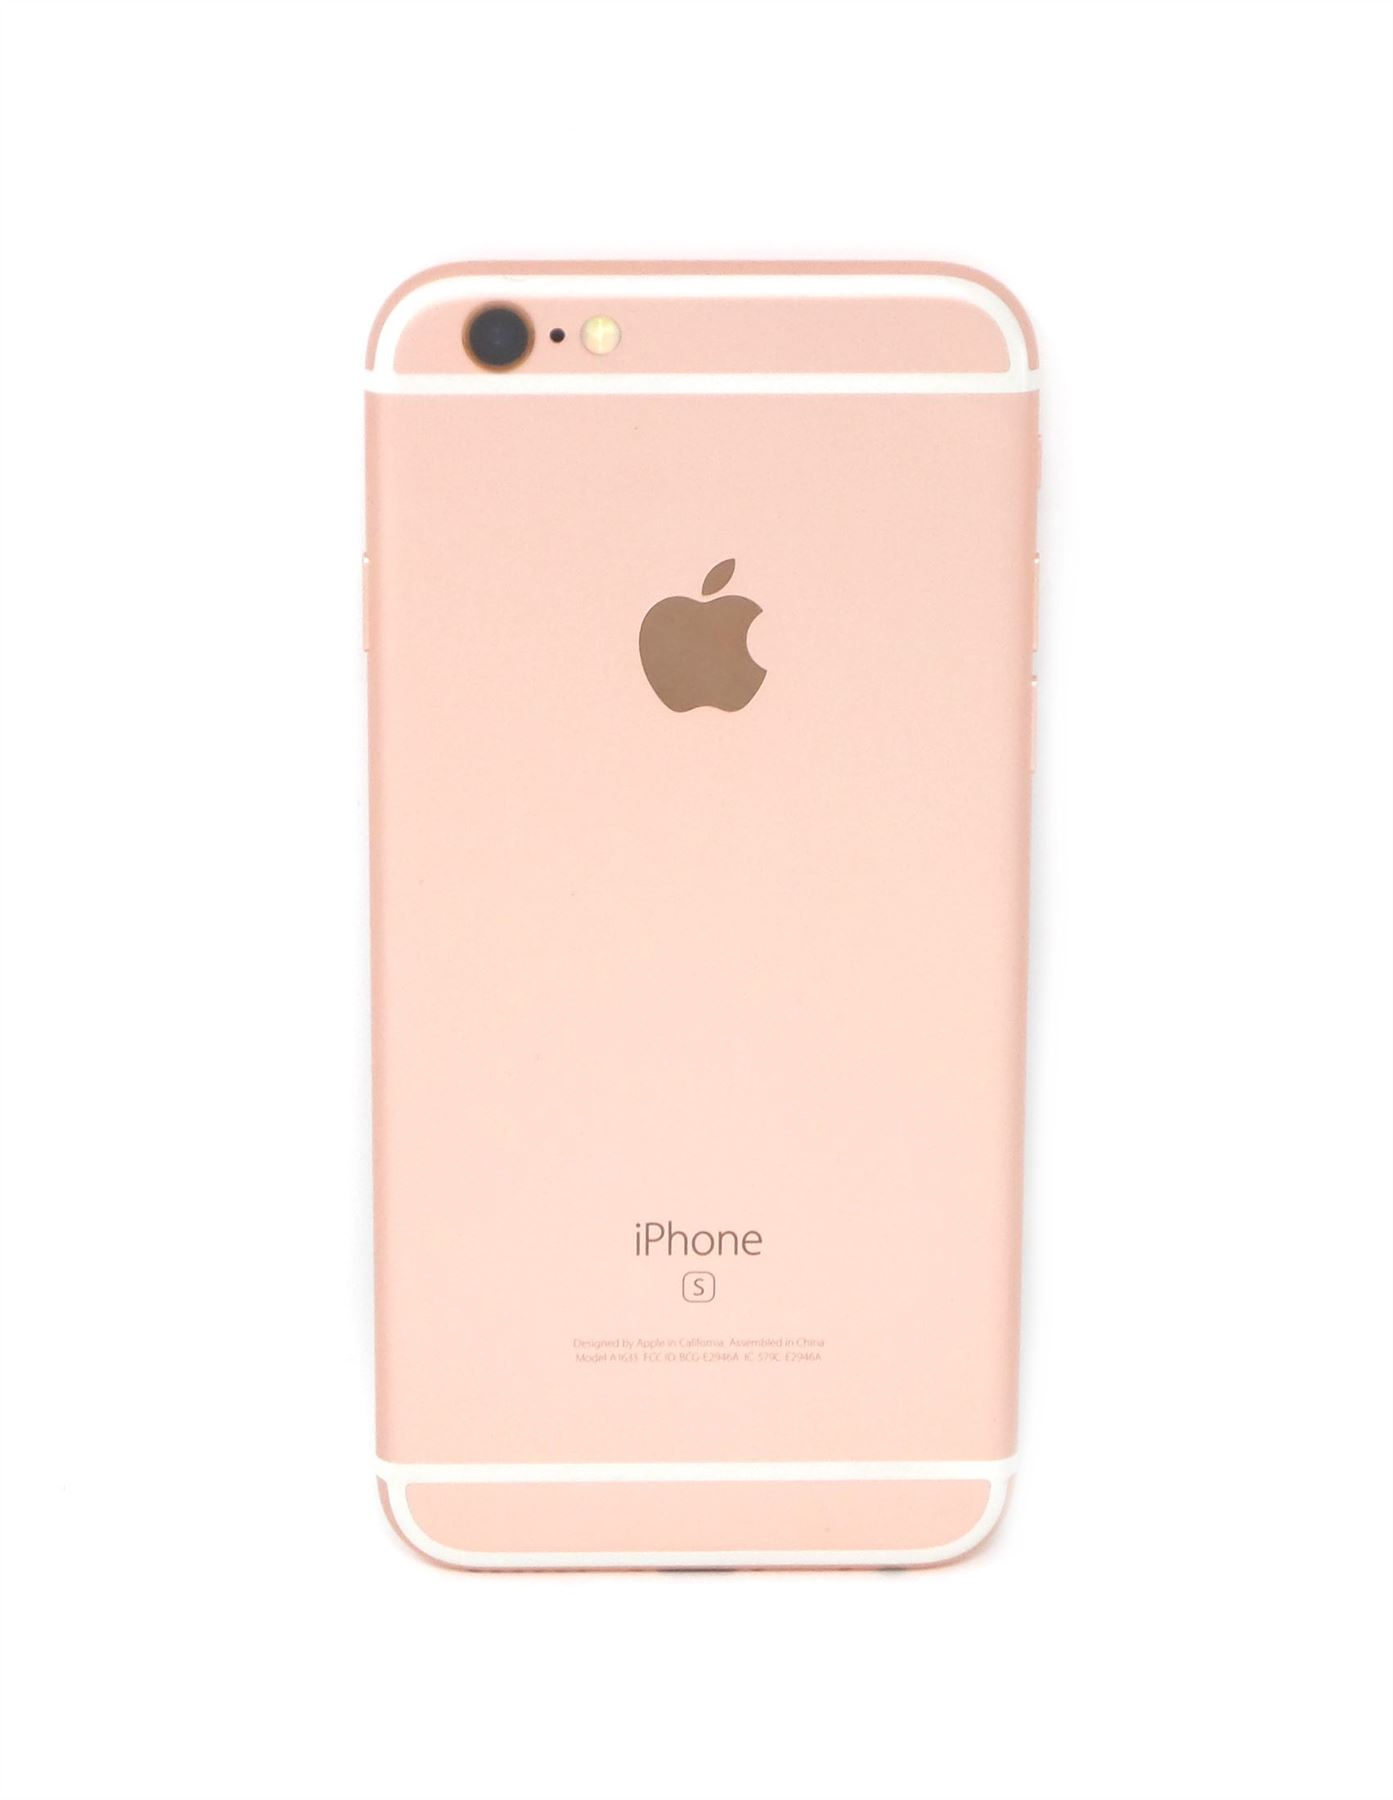 Apple-iPhone-6s-Carrier-Options-AT-amp-T-T-Mobile-Verizon-Unlocked-16-64-128GB-New thumbnail 15